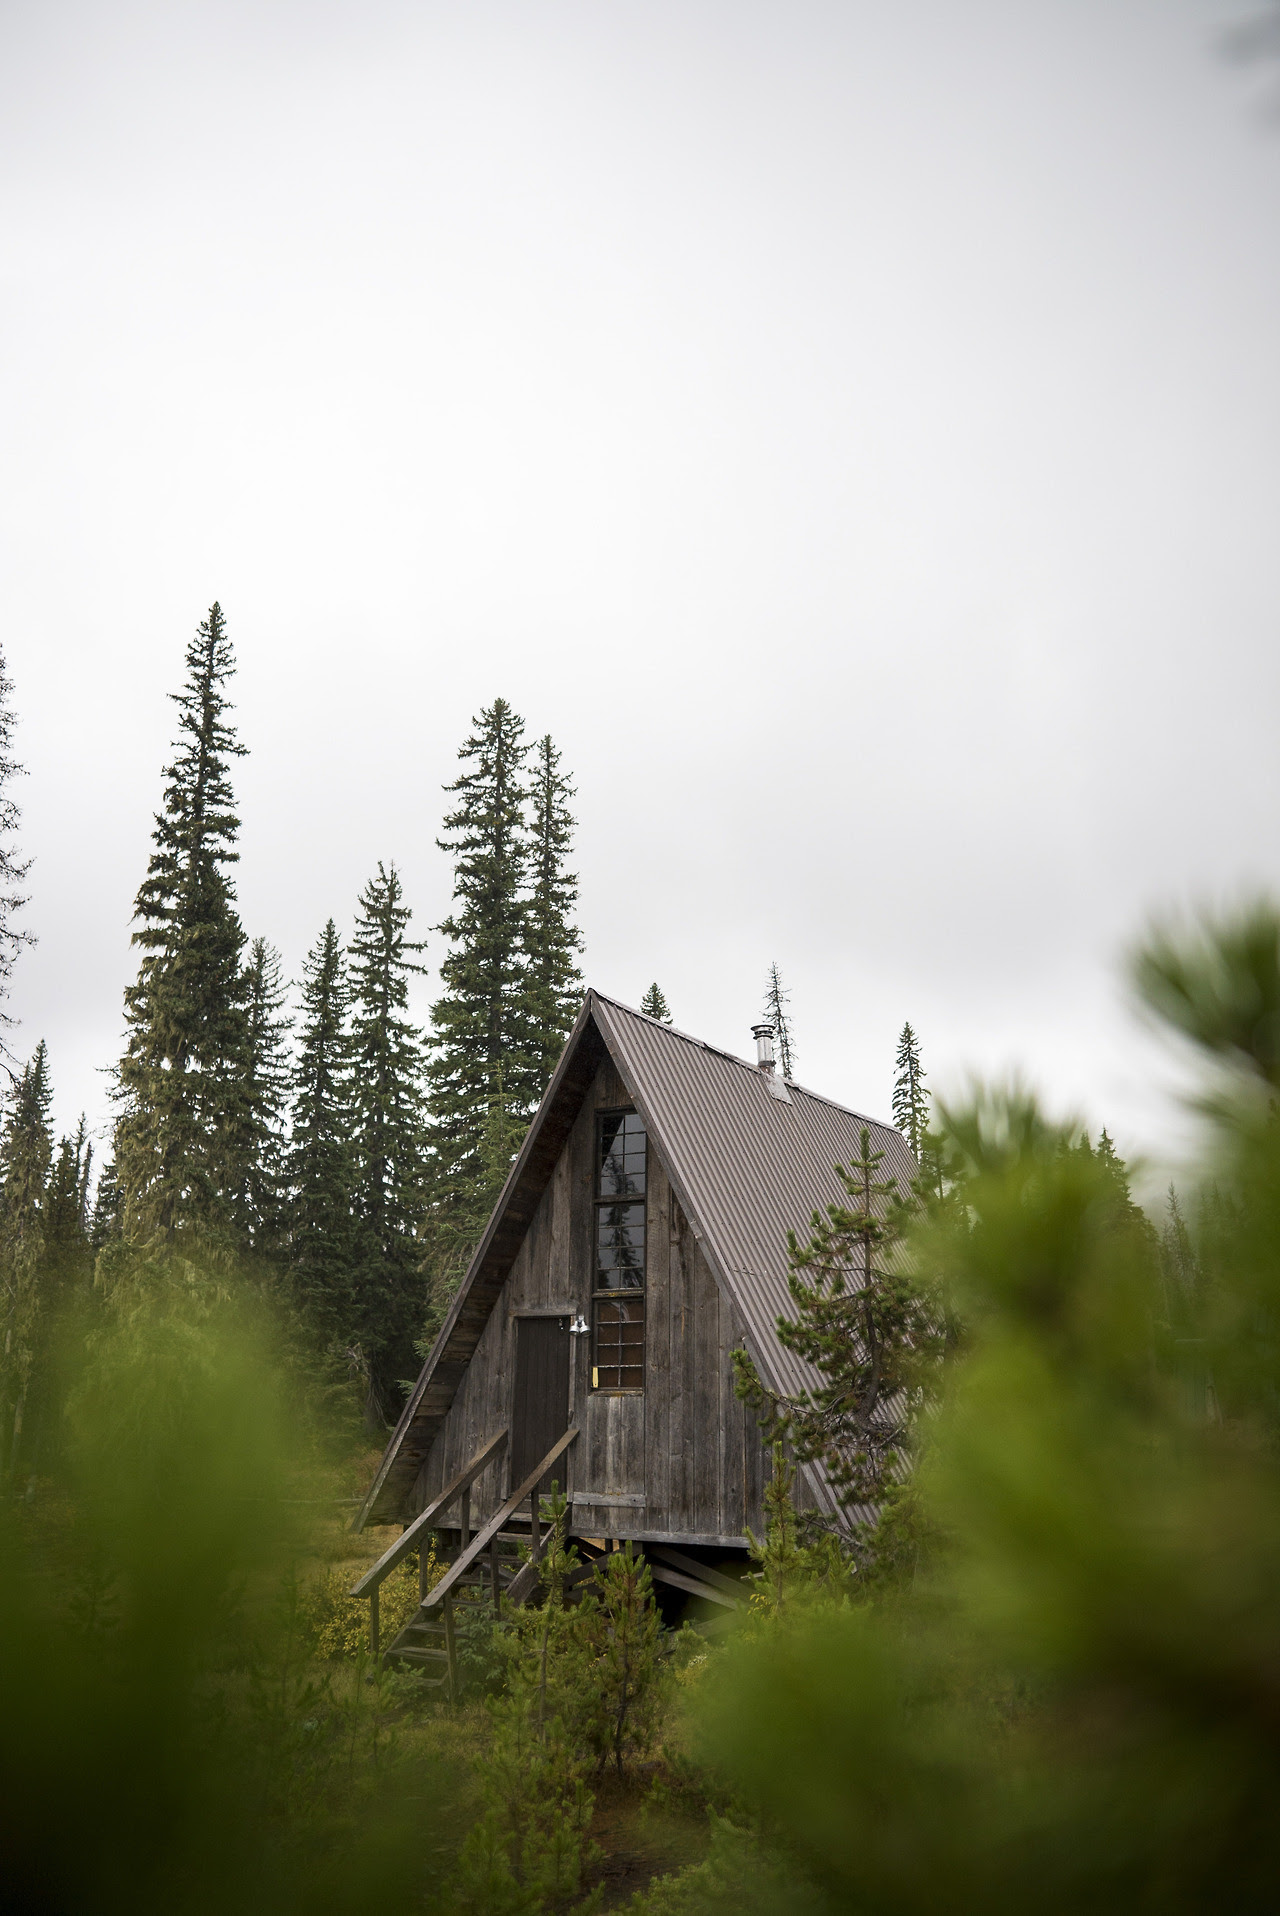 This is a rustic A-frame is just outside the Hoodoo ski area in Central Oregon. No real driveway, just nested amongst the trees and fog. Brett Edwards / @shredwardz